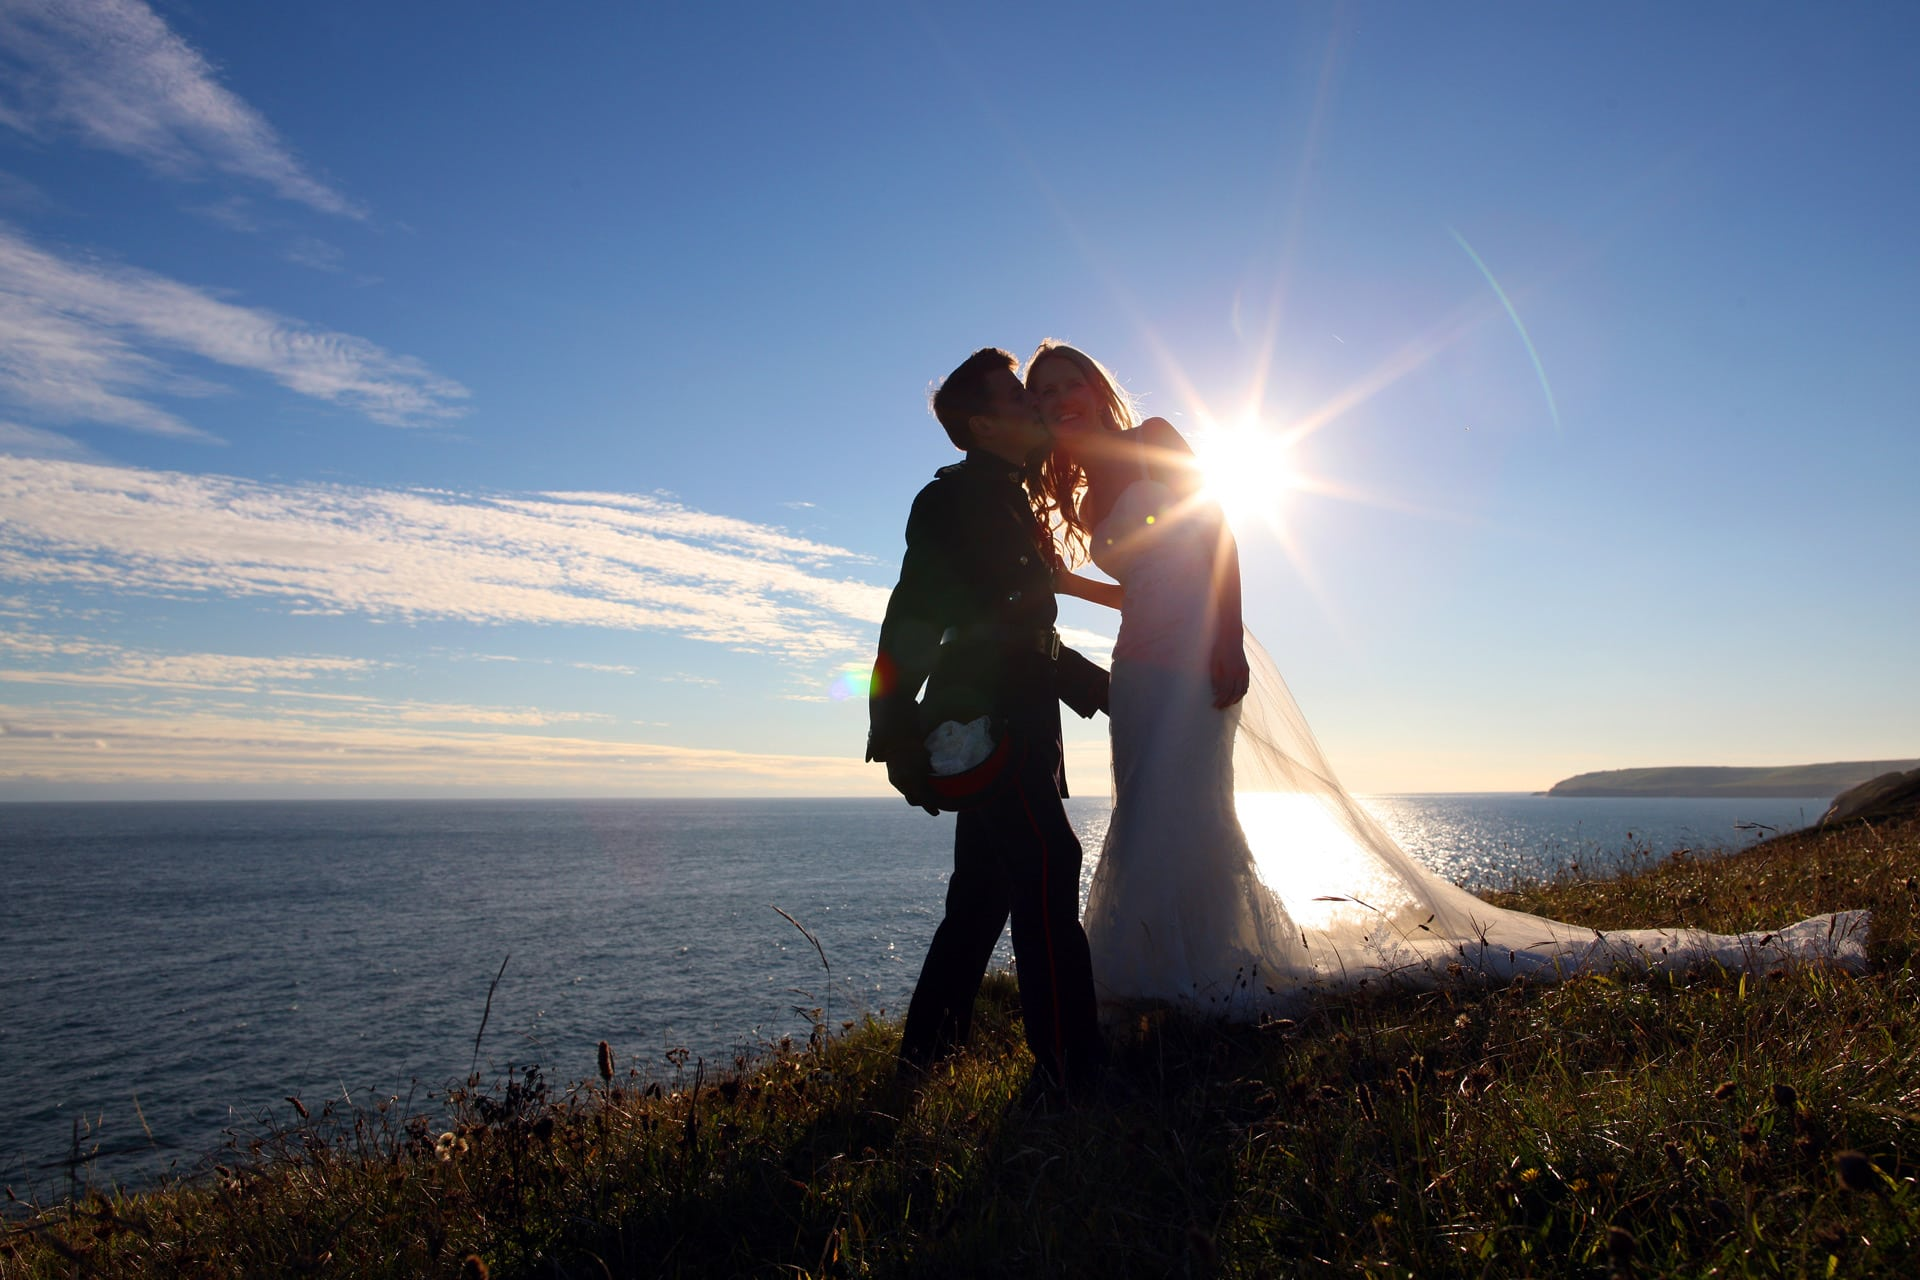 soldier-kisses-bride-on-clifftop-as-sun-sets